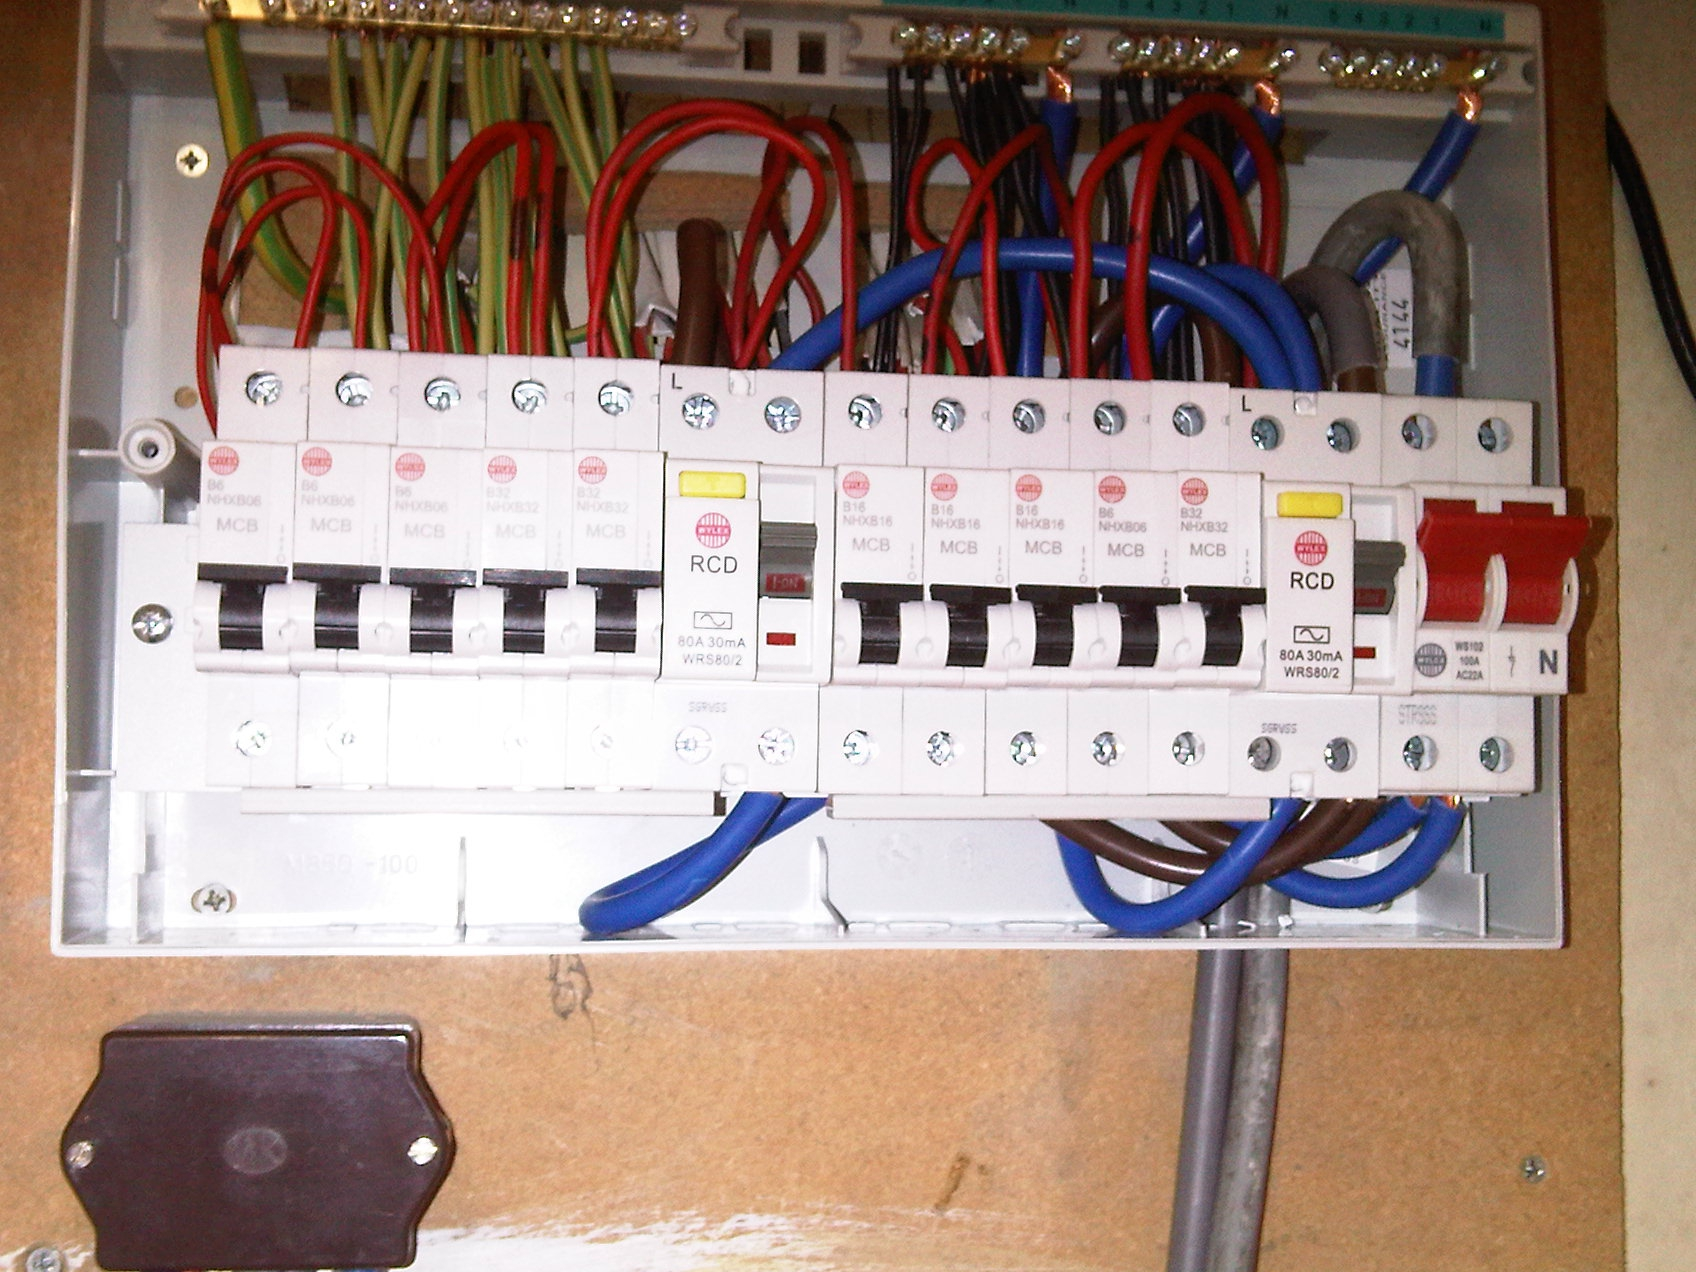 Fusebox 4 household fuse box residential fuse boxes \u2022 wiring diagrams j how to reset fuse box in house at panicattacktreatment.co